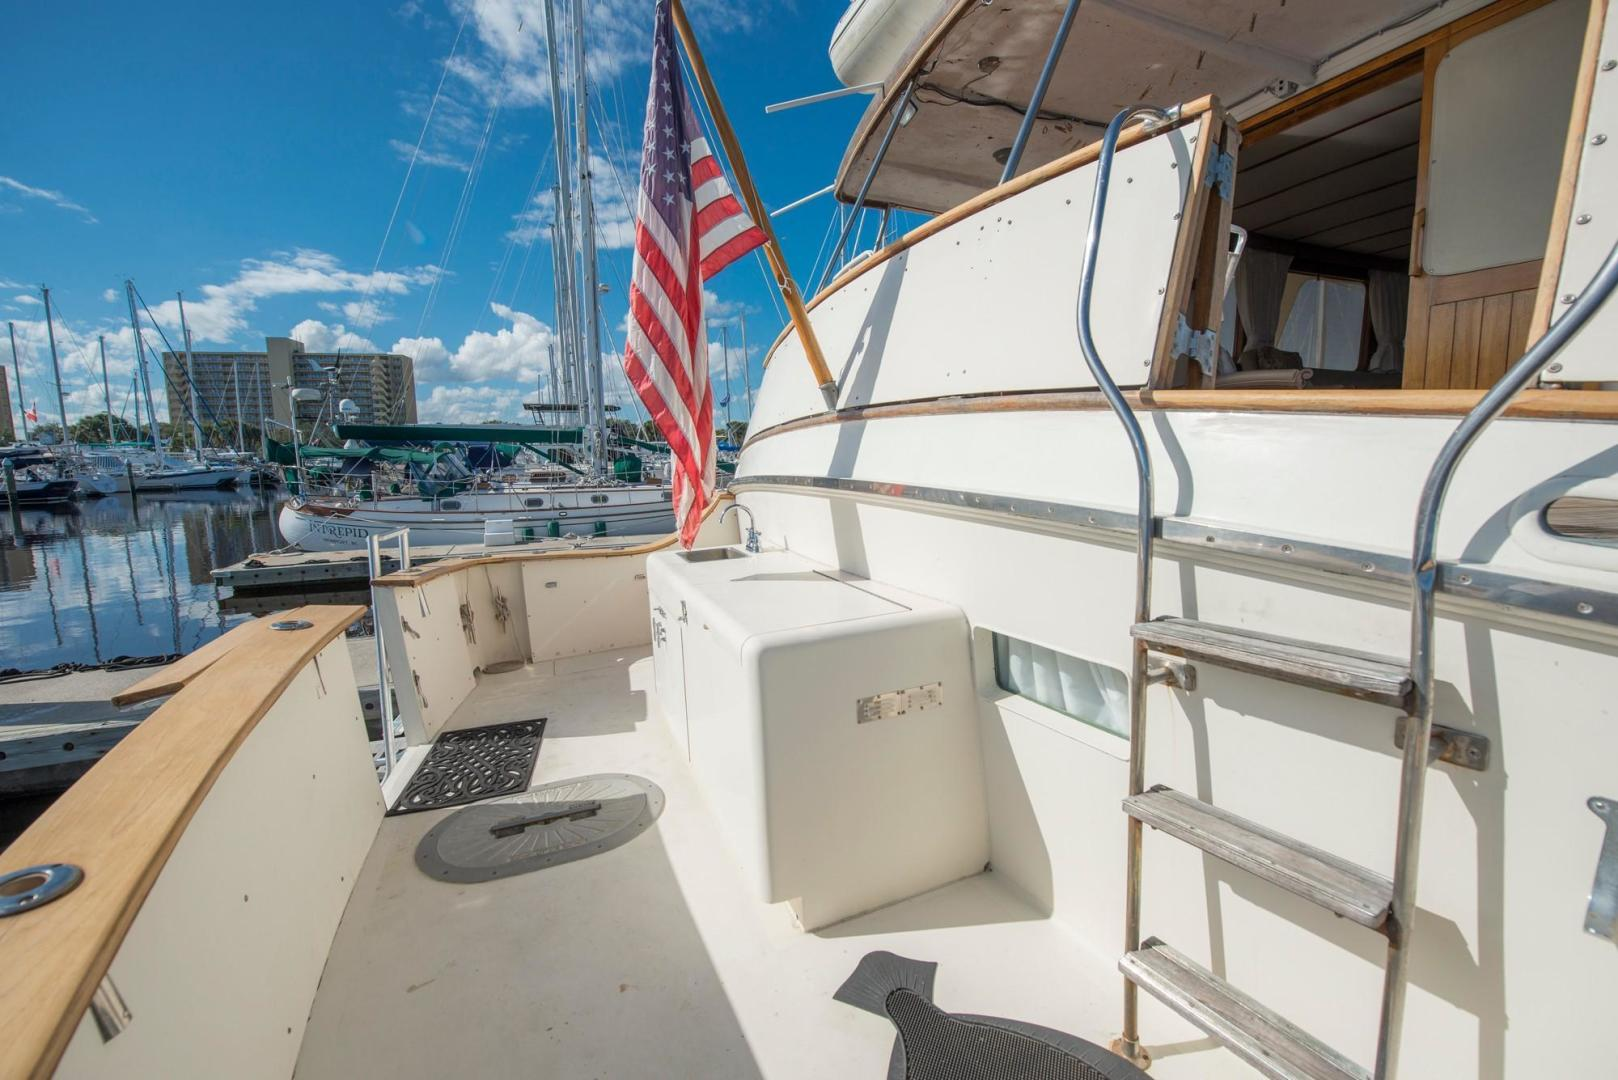 61' Cheoy Lee, Listing Number 100846882, Image No. 8